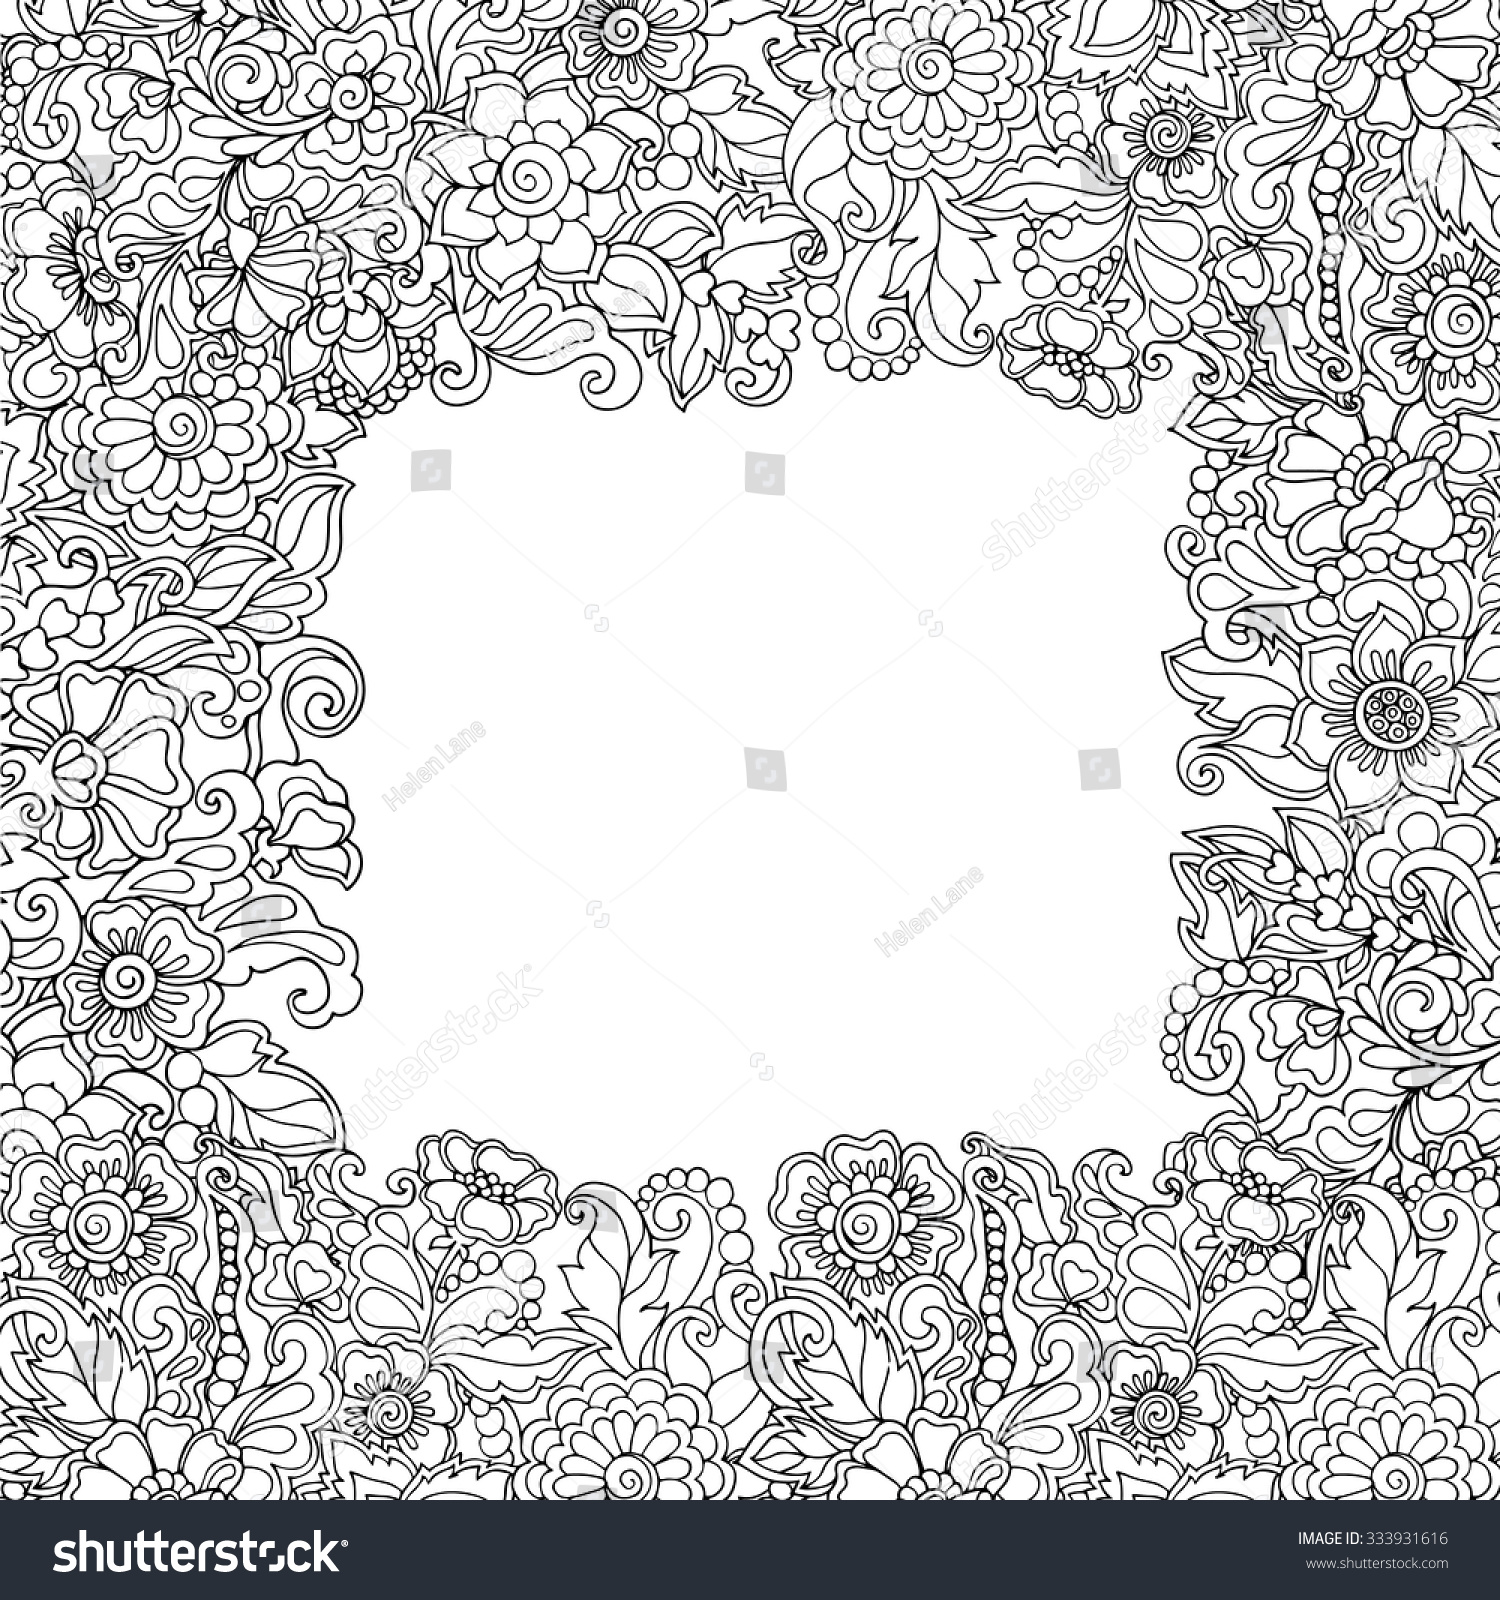 clip art frame coloring page mycoloring free printable coloring